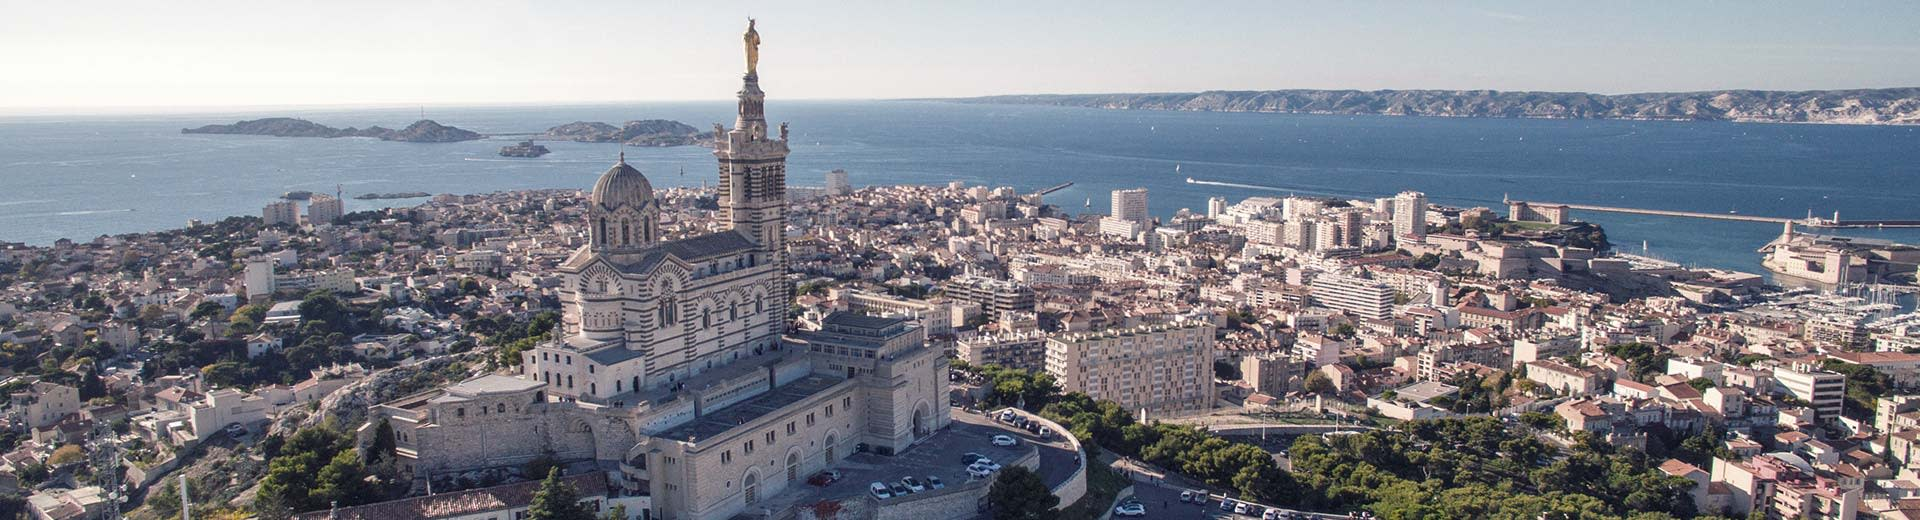 The beautiful port of Marseille stretches out on a clear and warm day